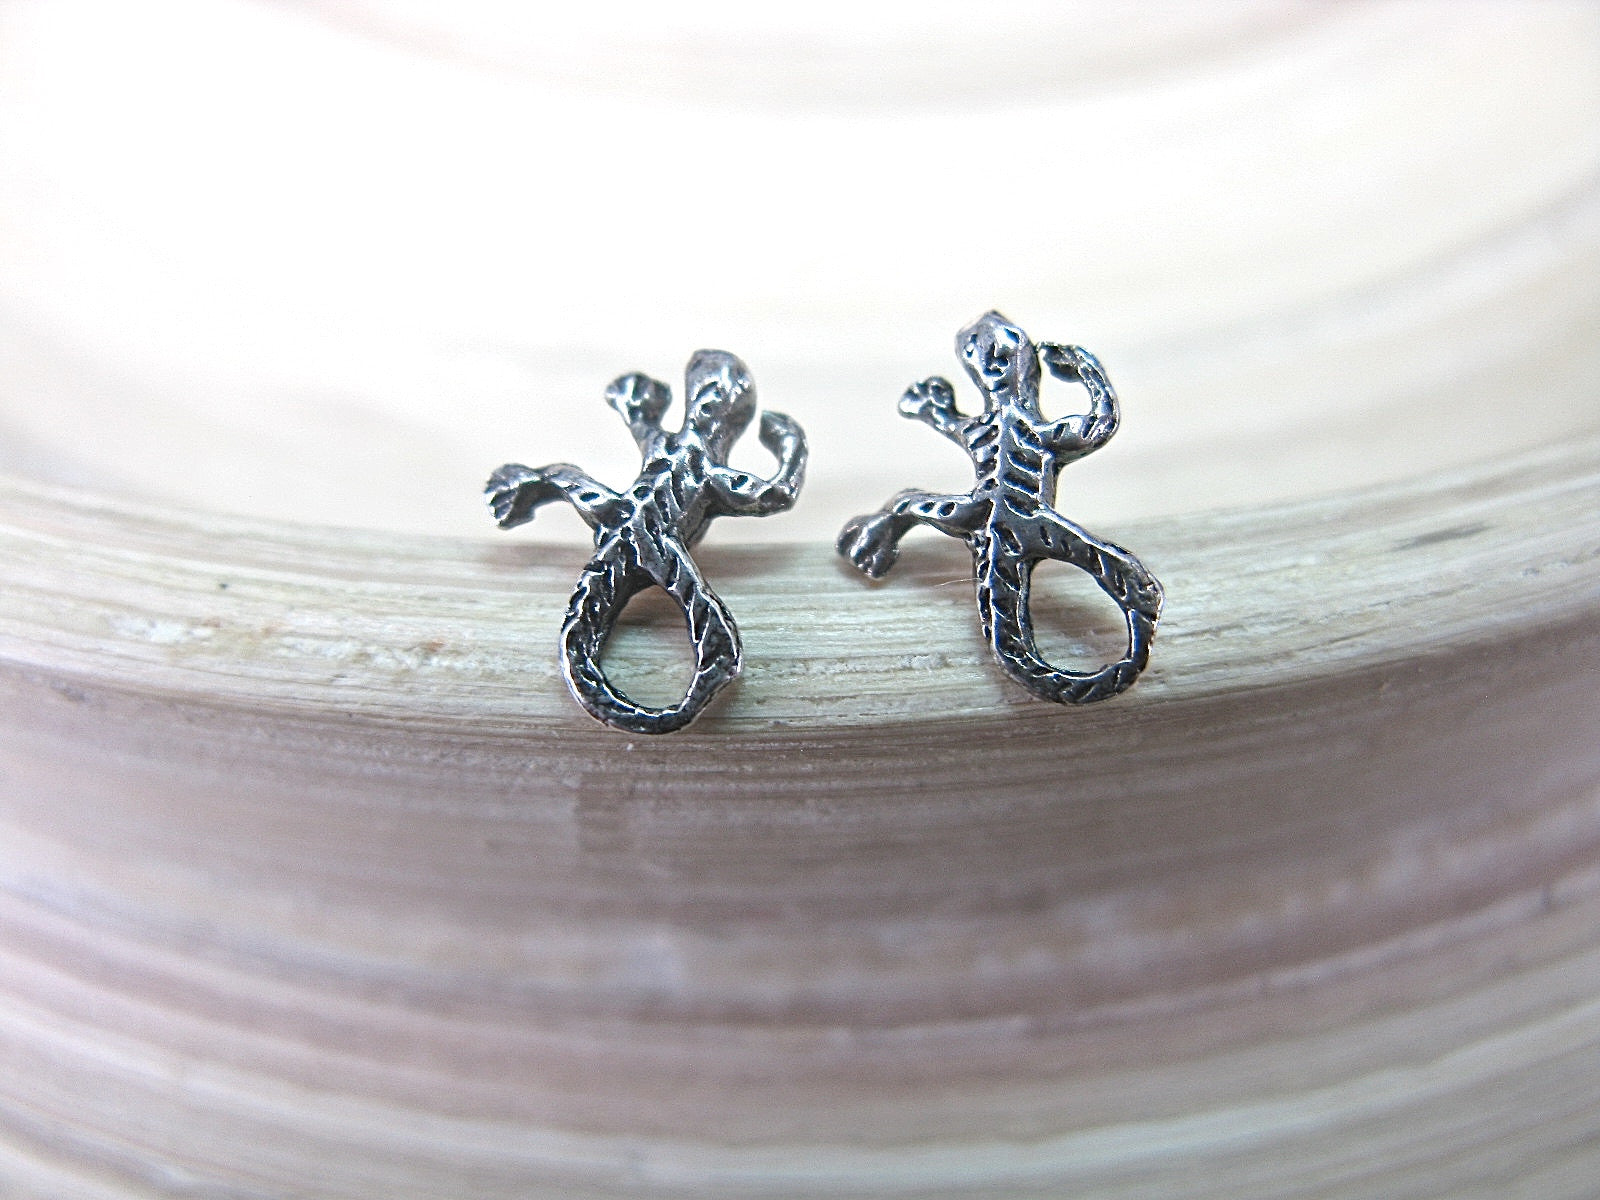 Gecko Stud Earrings 925 Sterling Silver Stud - Faith Owl